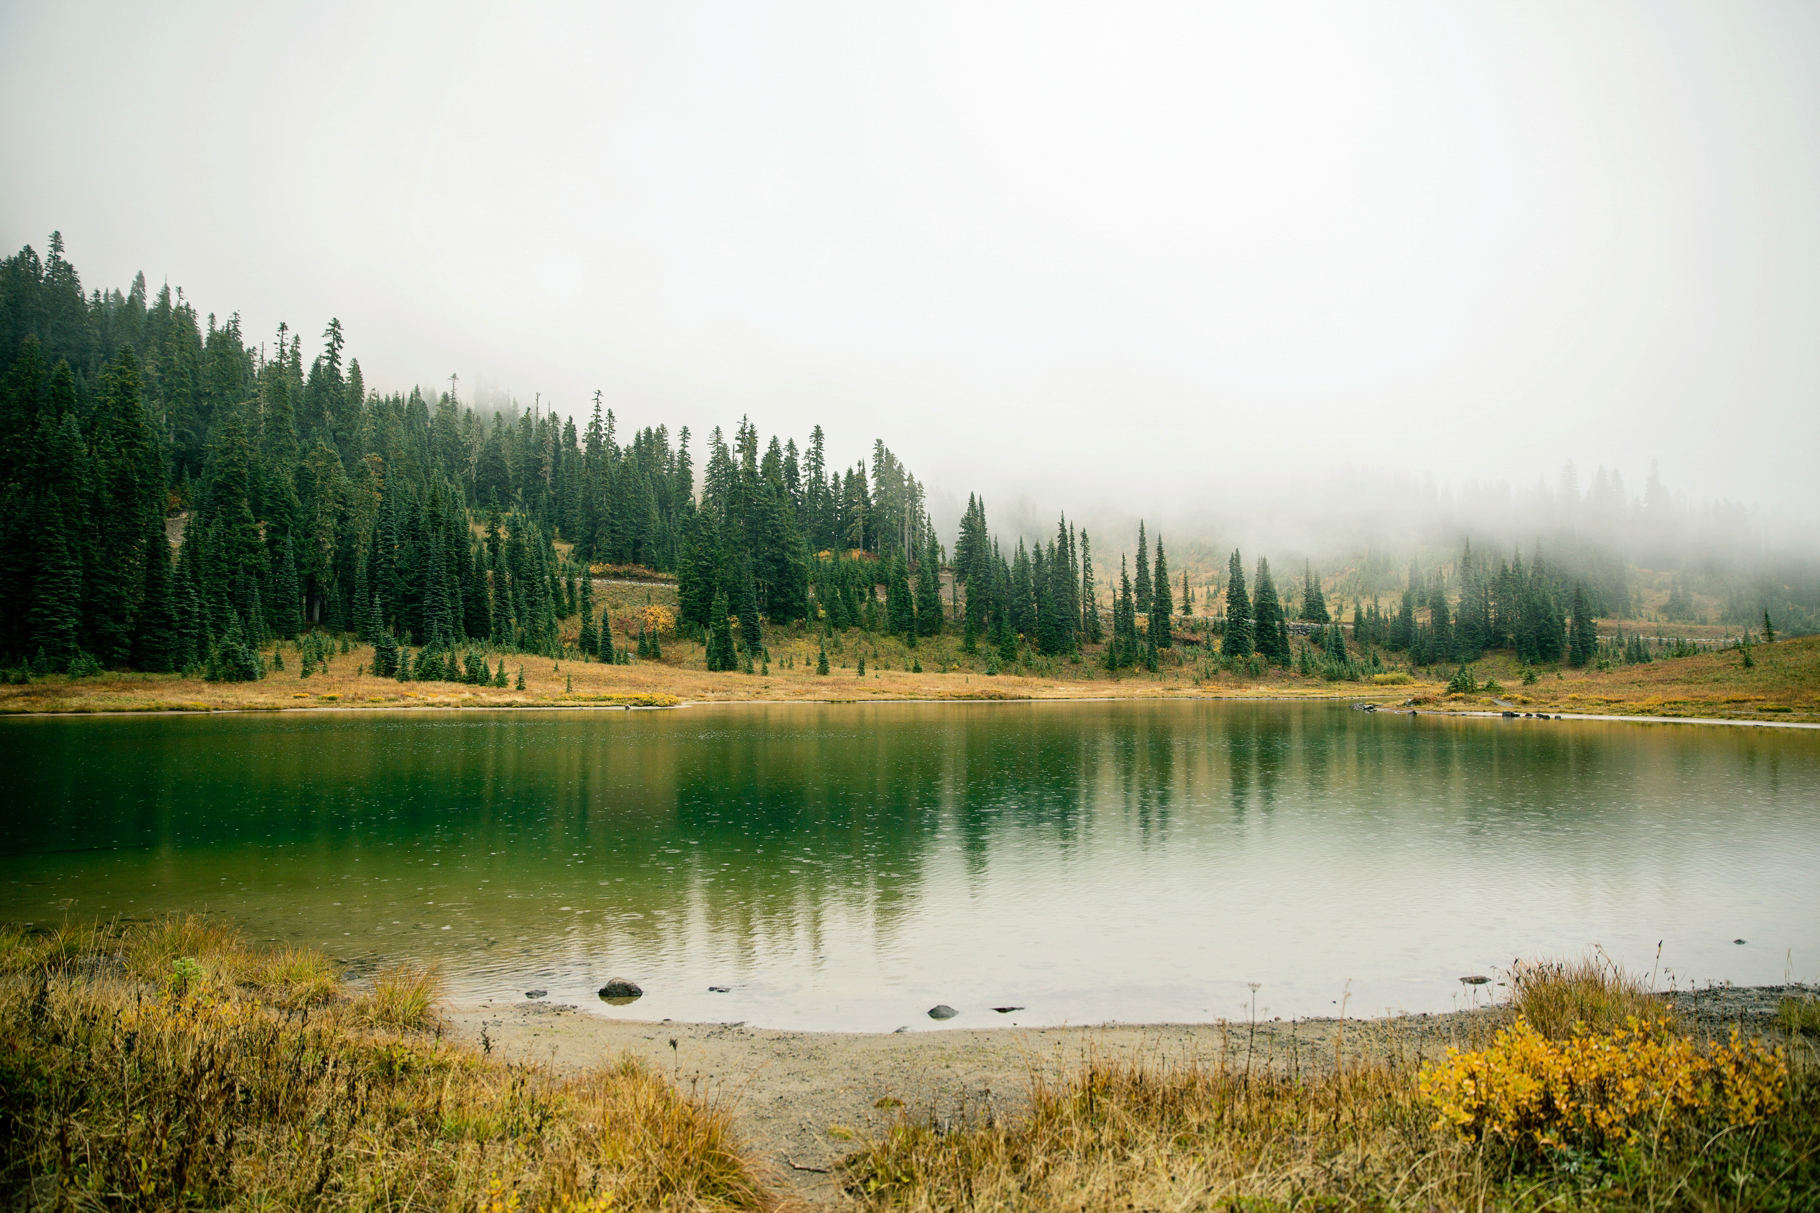 73-2015-Photographer-Year-in-Review-Lake-Mt-Rainier-National-Park-Anniversary-Adventure-PCT-Hiking-Seattle-Wedding-Photography-by-Betty-Elaine